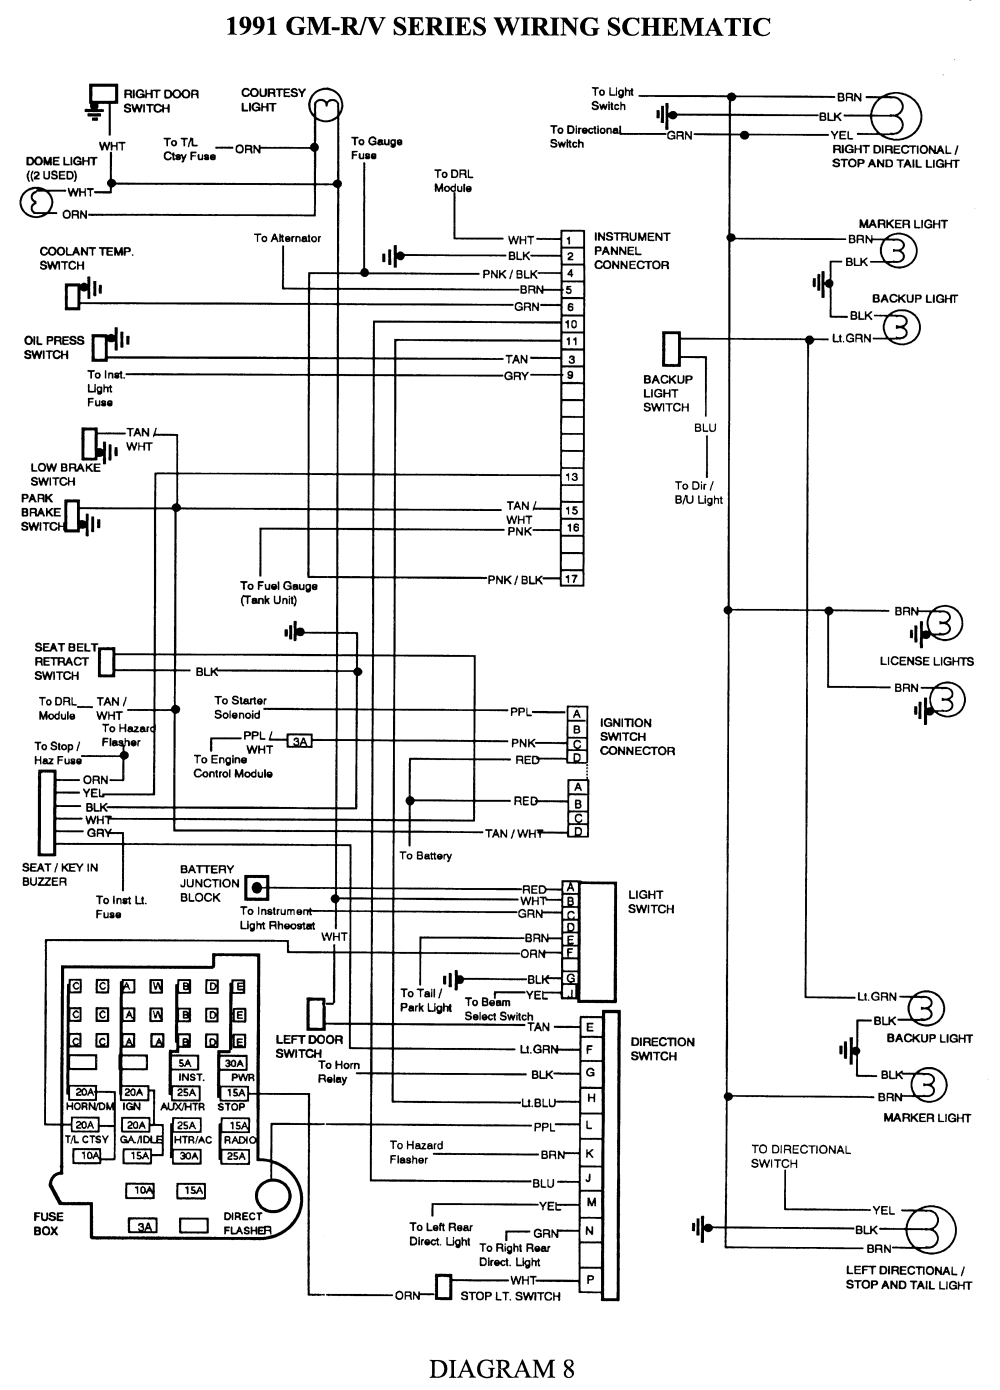 DIAGRAM] Opel Blazer Wiring Diagram FULL Version HD Quality Wiring Diagram  - HABBODATABASES.BJOLY-PHOTOGRAPHIE.FRhabbodatabases.bjoly-photographie.fr